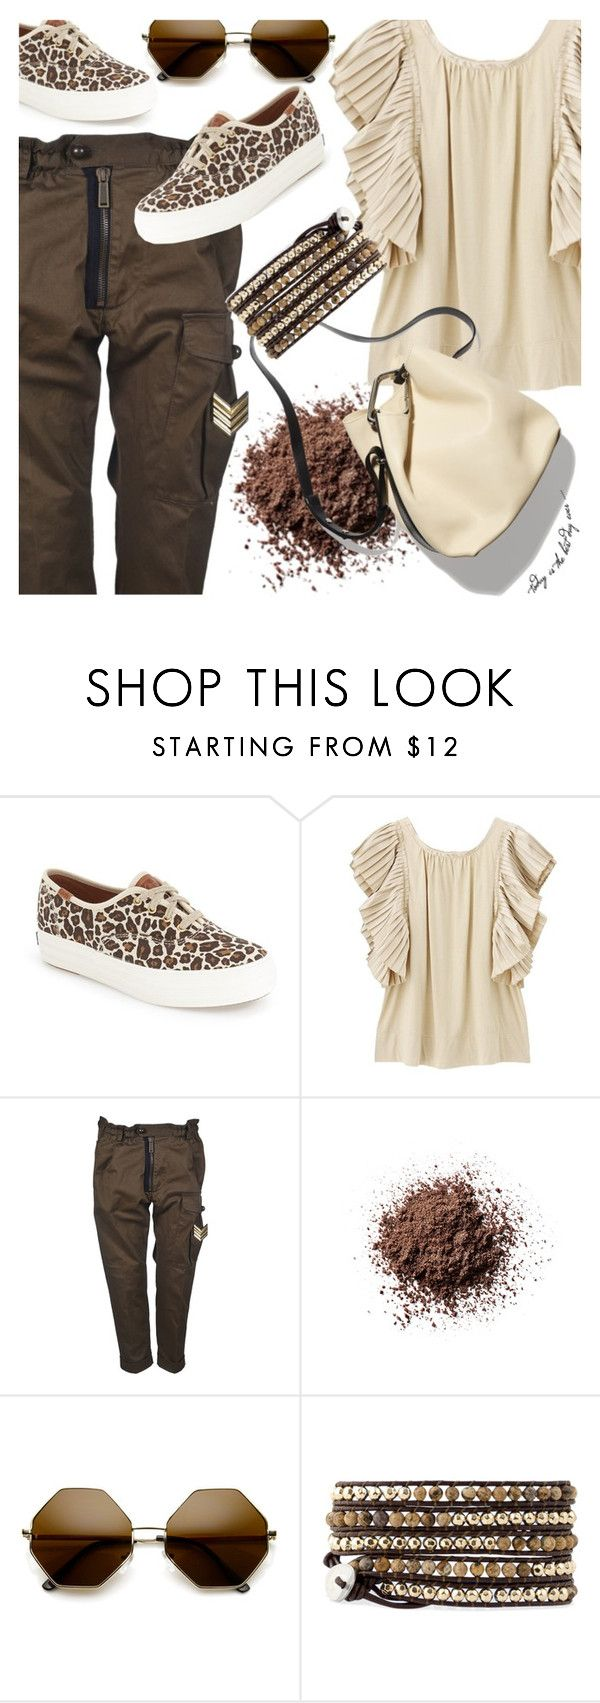 """""""Stay,Summer!"""" by cilita-d ❤ liked on Polyvore featuring Keds, Zhor & Néma, Dsquared2, 3.1 Phillip Lim and ZeroUV"""